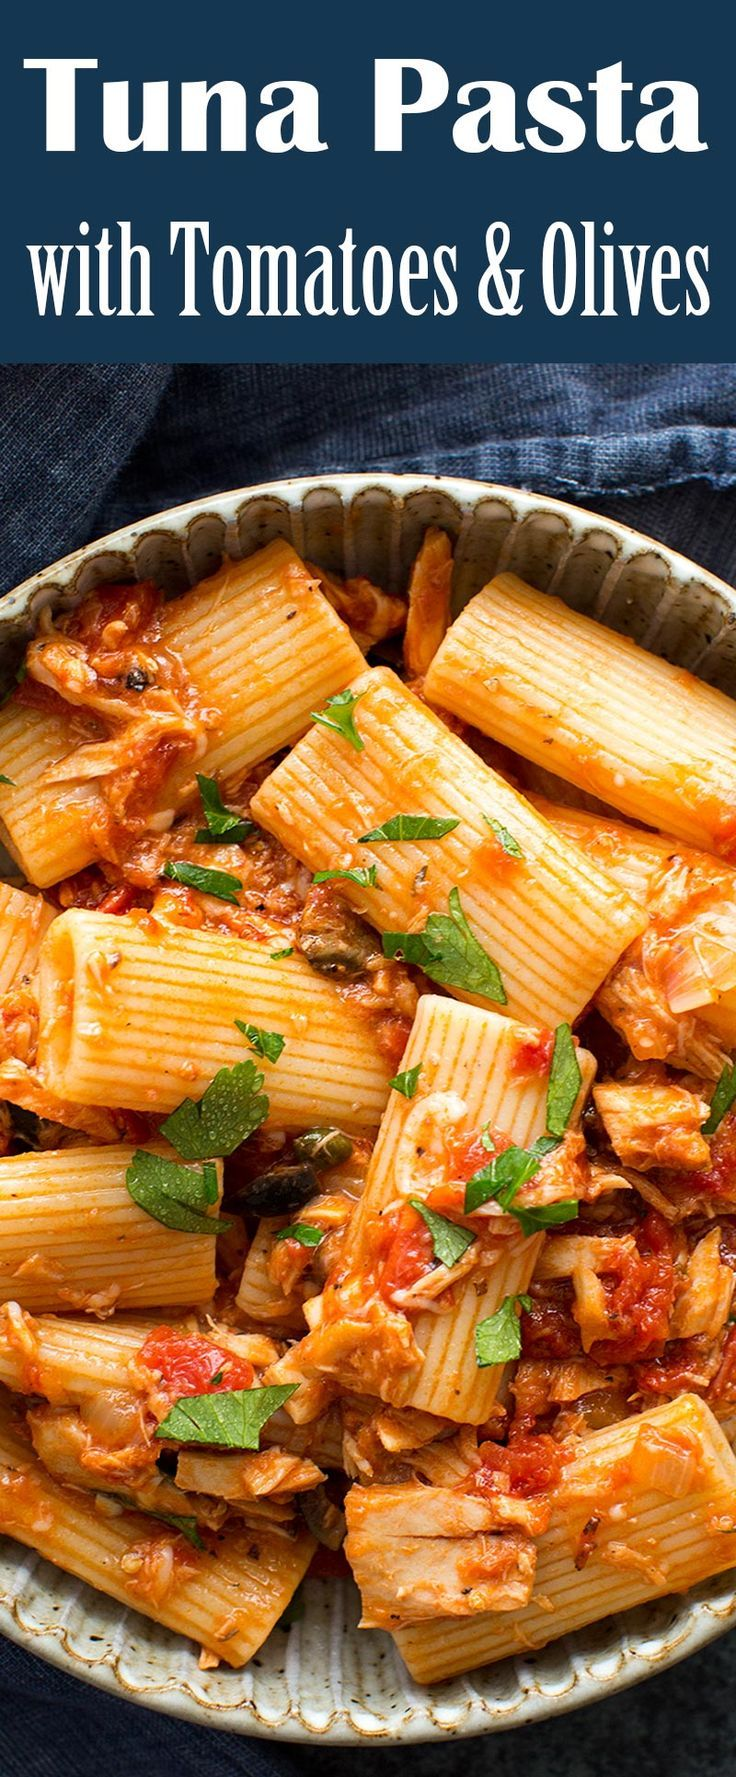 EASY, takes only 30 min! Pasta with sauce of tuna, tomato, garlic, shallots, olives, parsley. Perfect midweek meal. On http://SimplyRecipes.com